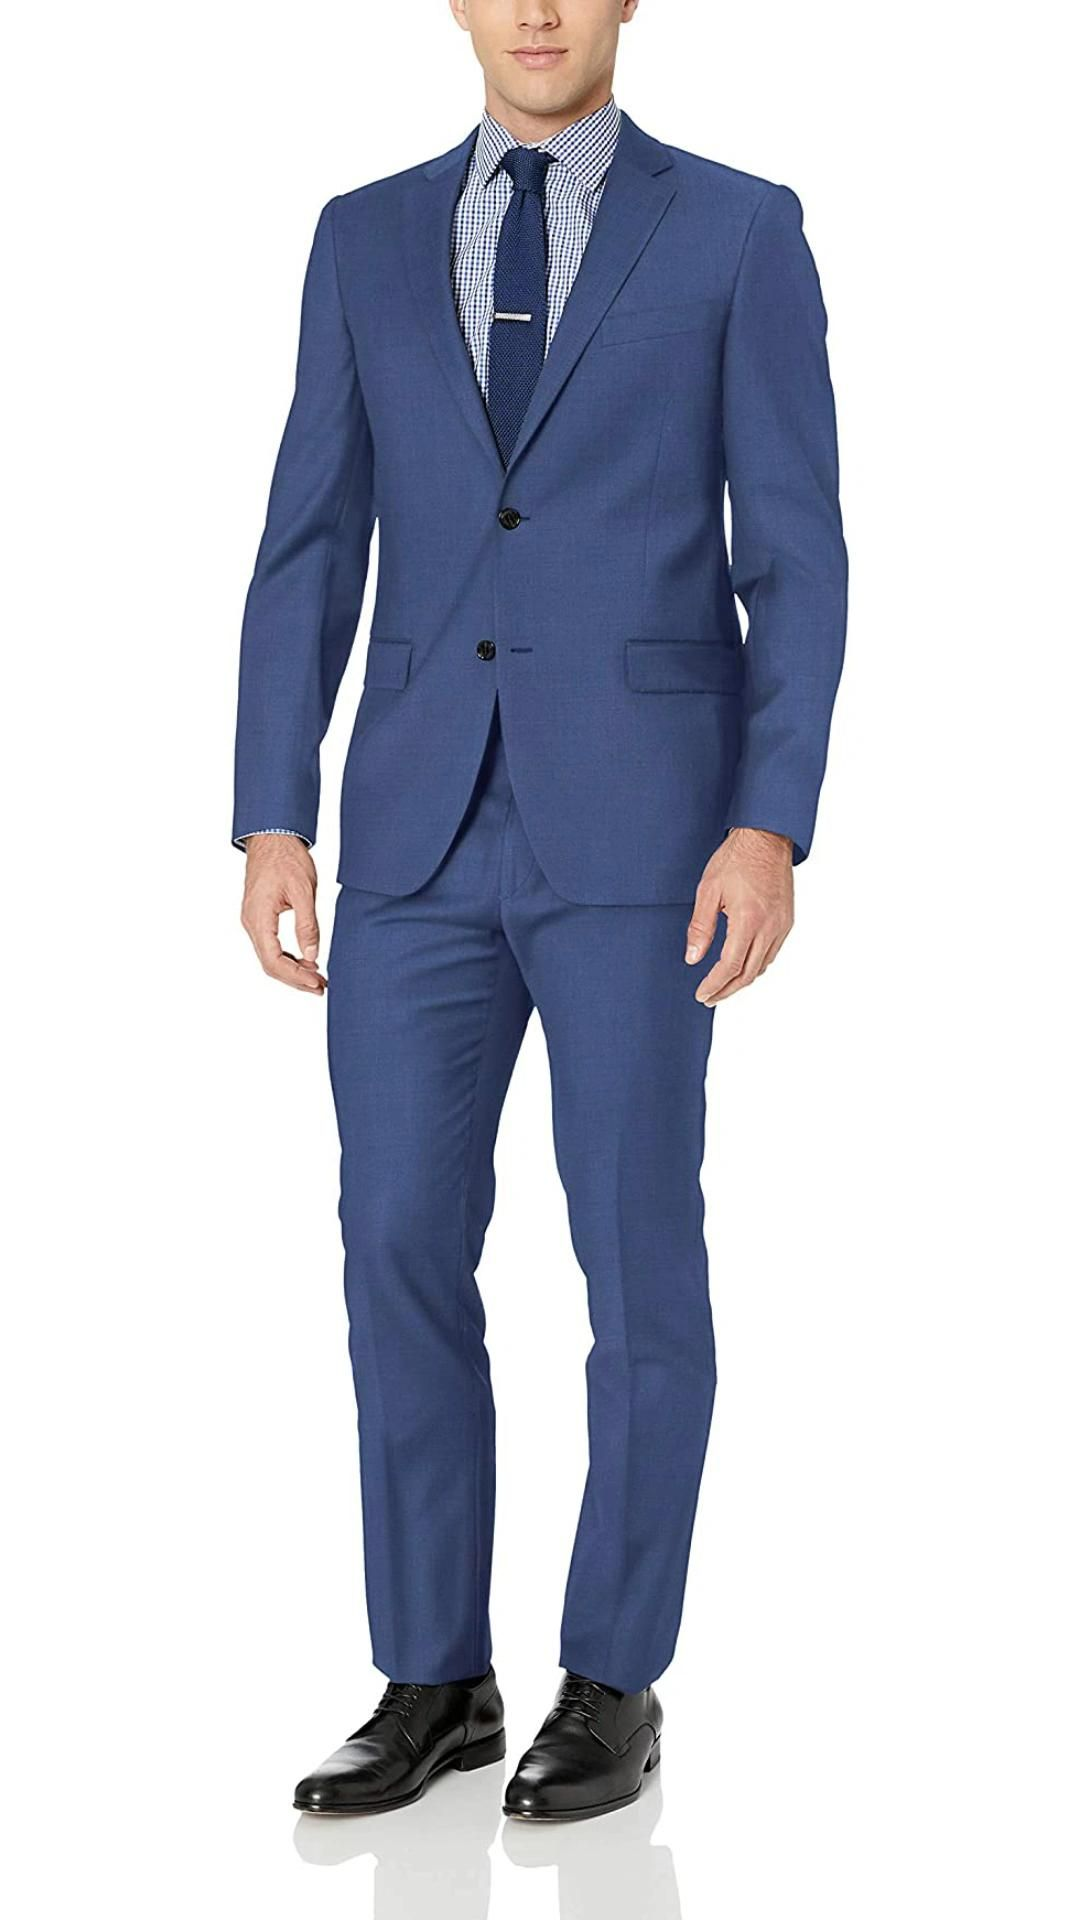 Tommy Hilfiger Mens Slim Fit Performance Suit with Stretch